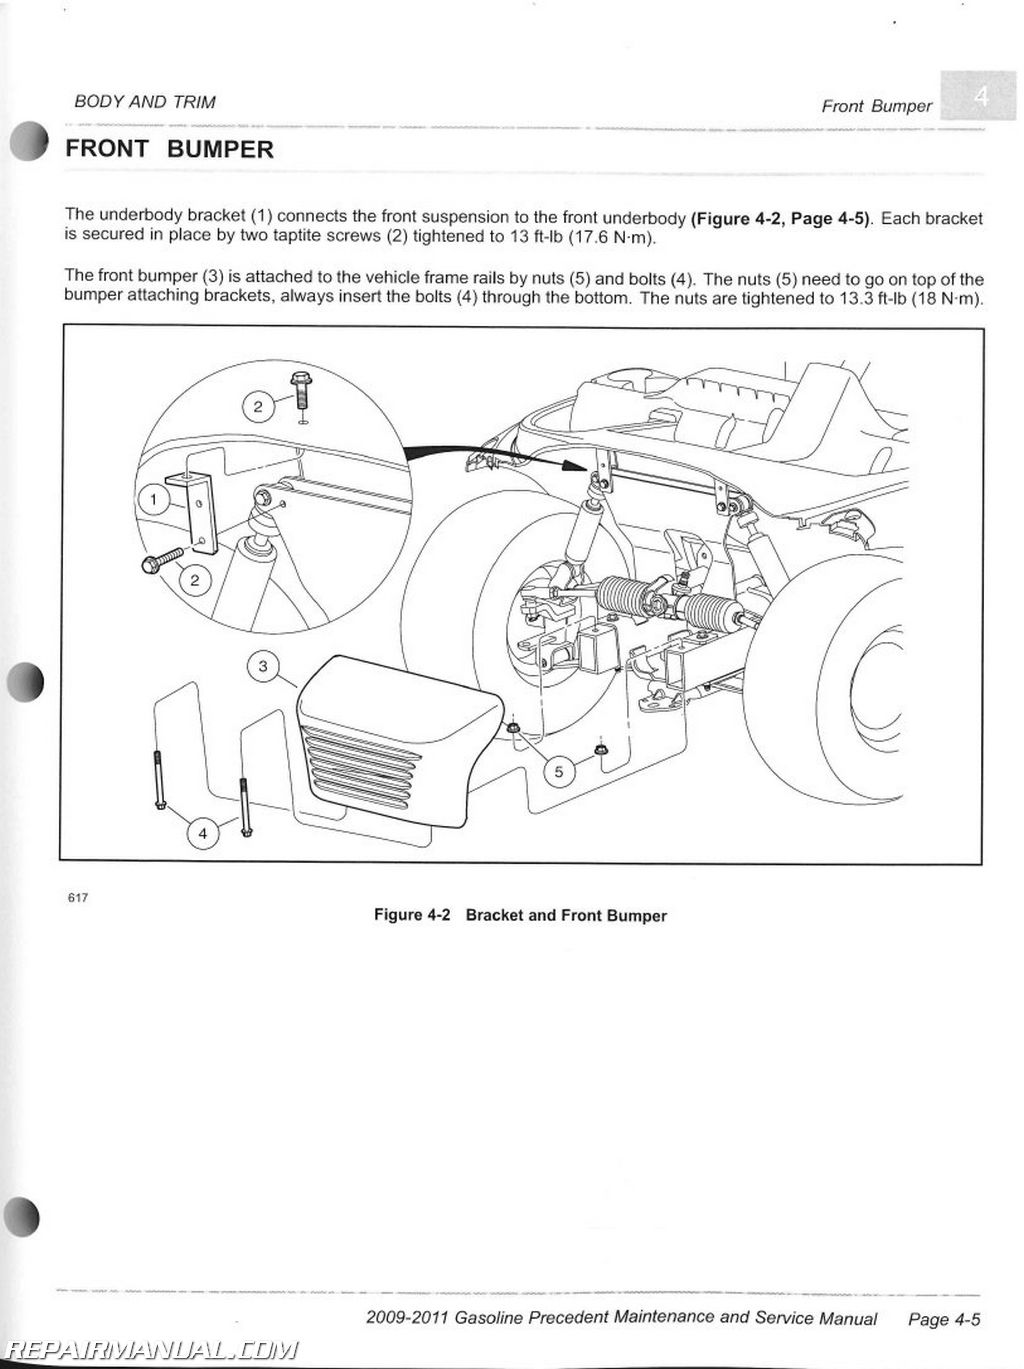 1995 gmc headlight schema cablage